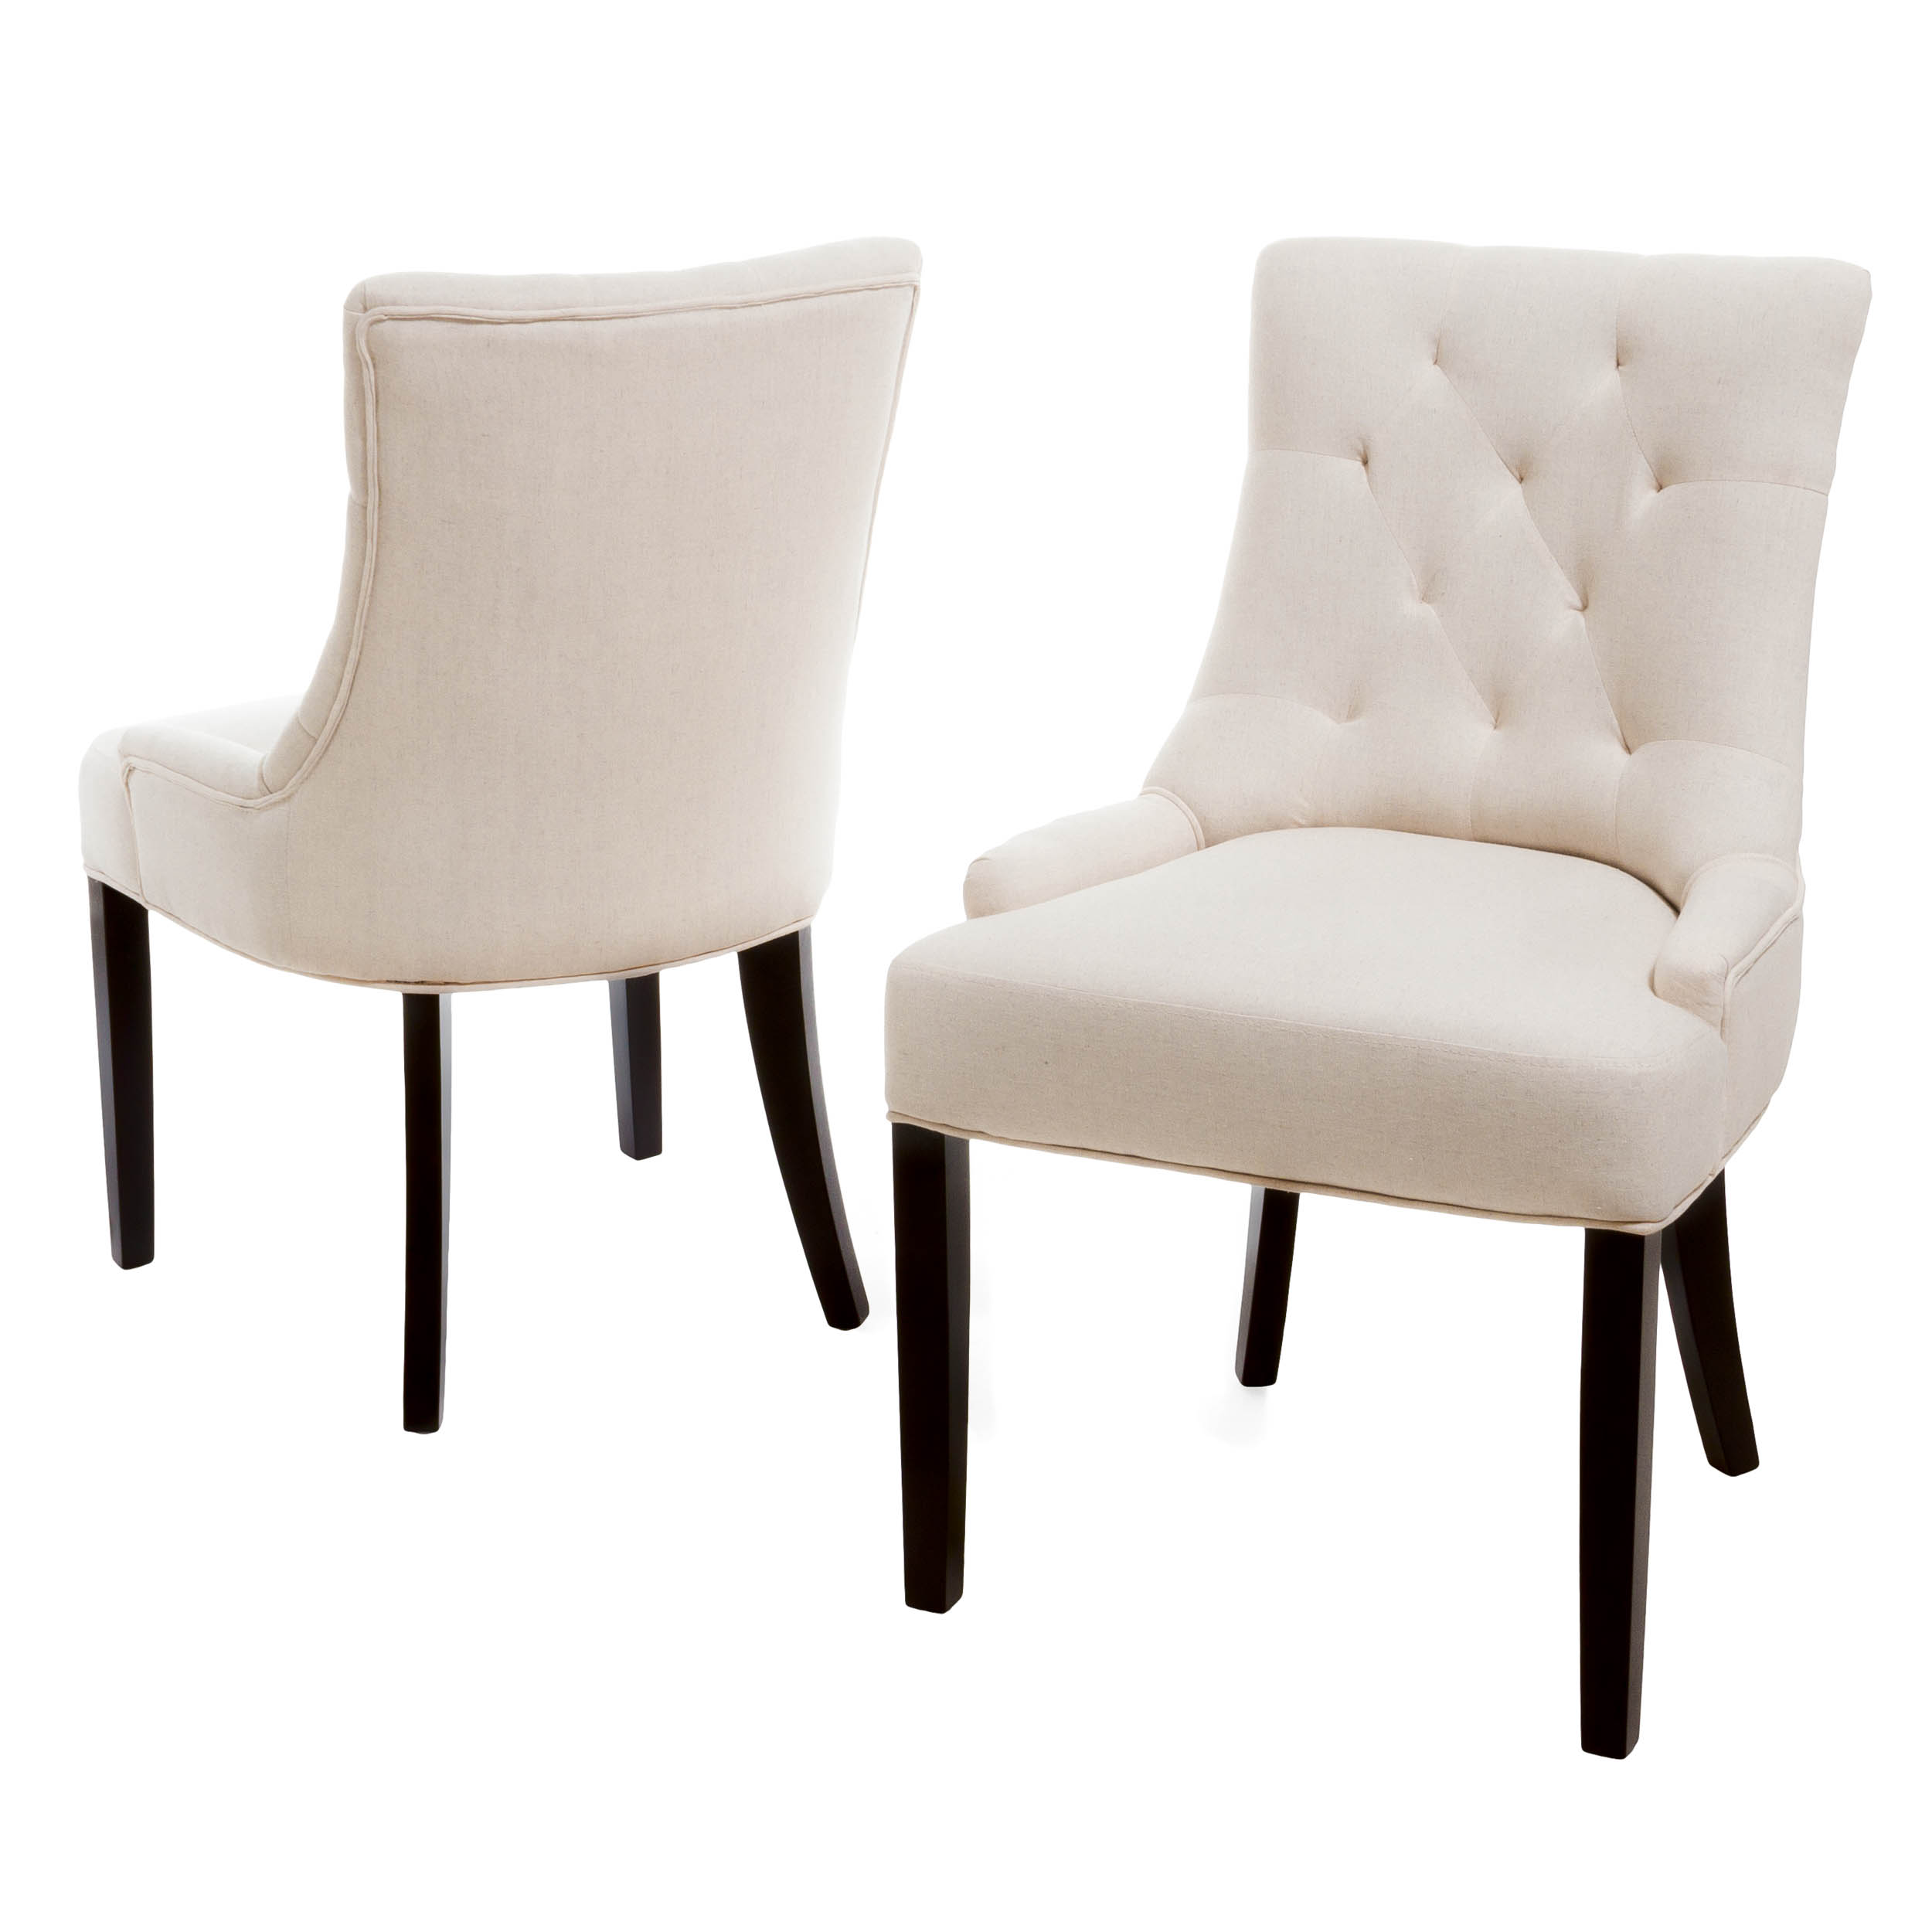 Johnson Tufted Fabric Dining Chair (Set of 2) by GDF Studio